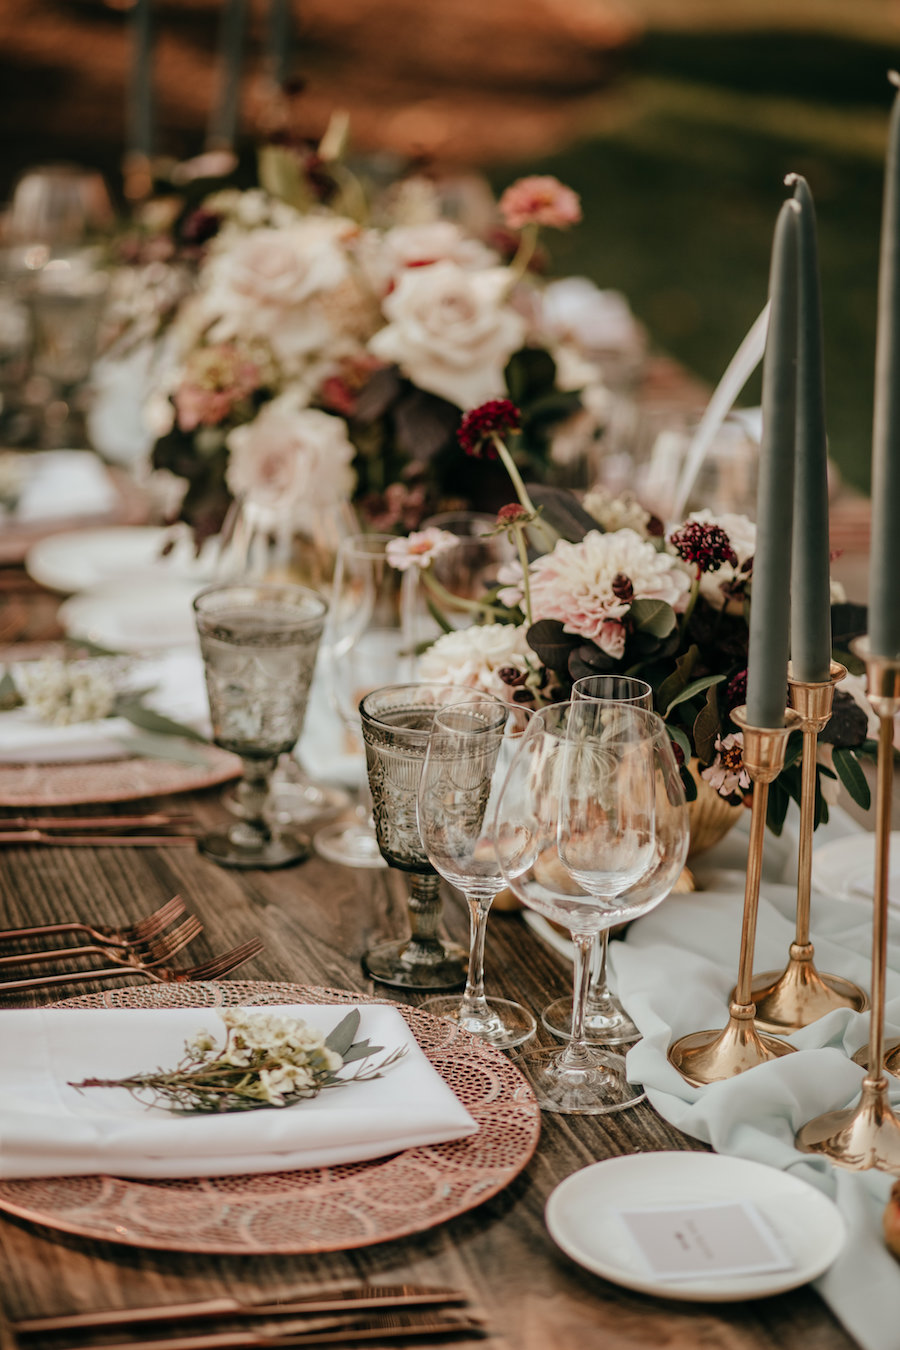 Jennifer and Jared's Chic Copper-Toned Wedding at Chateau St. Jean9.jpg